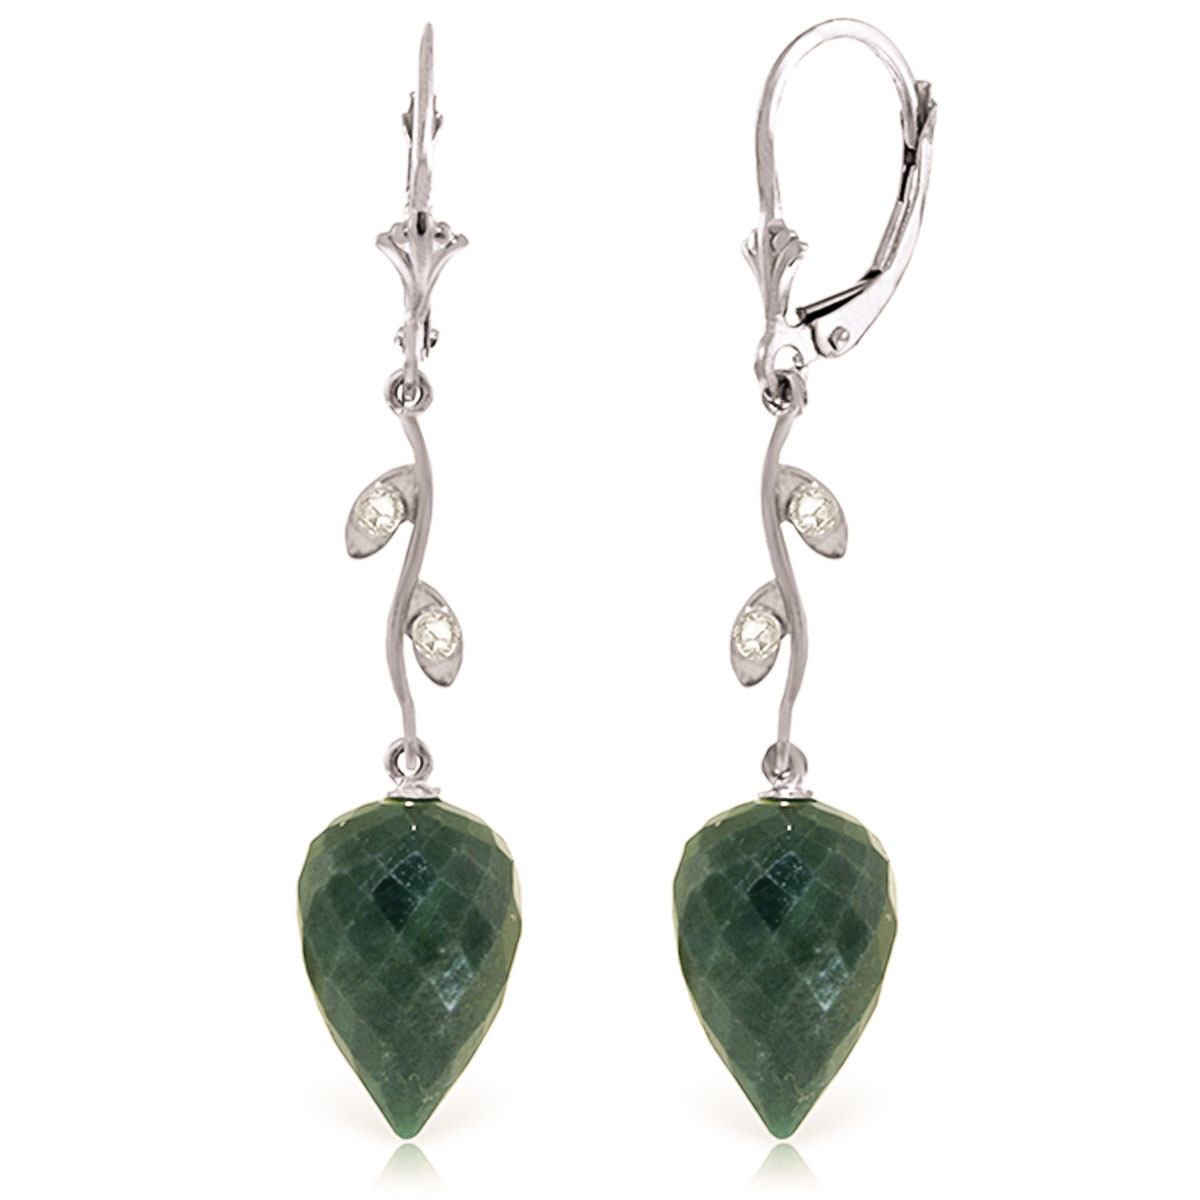 Emerald Drop Earrings 25.72 ctw in 9ct White Gold